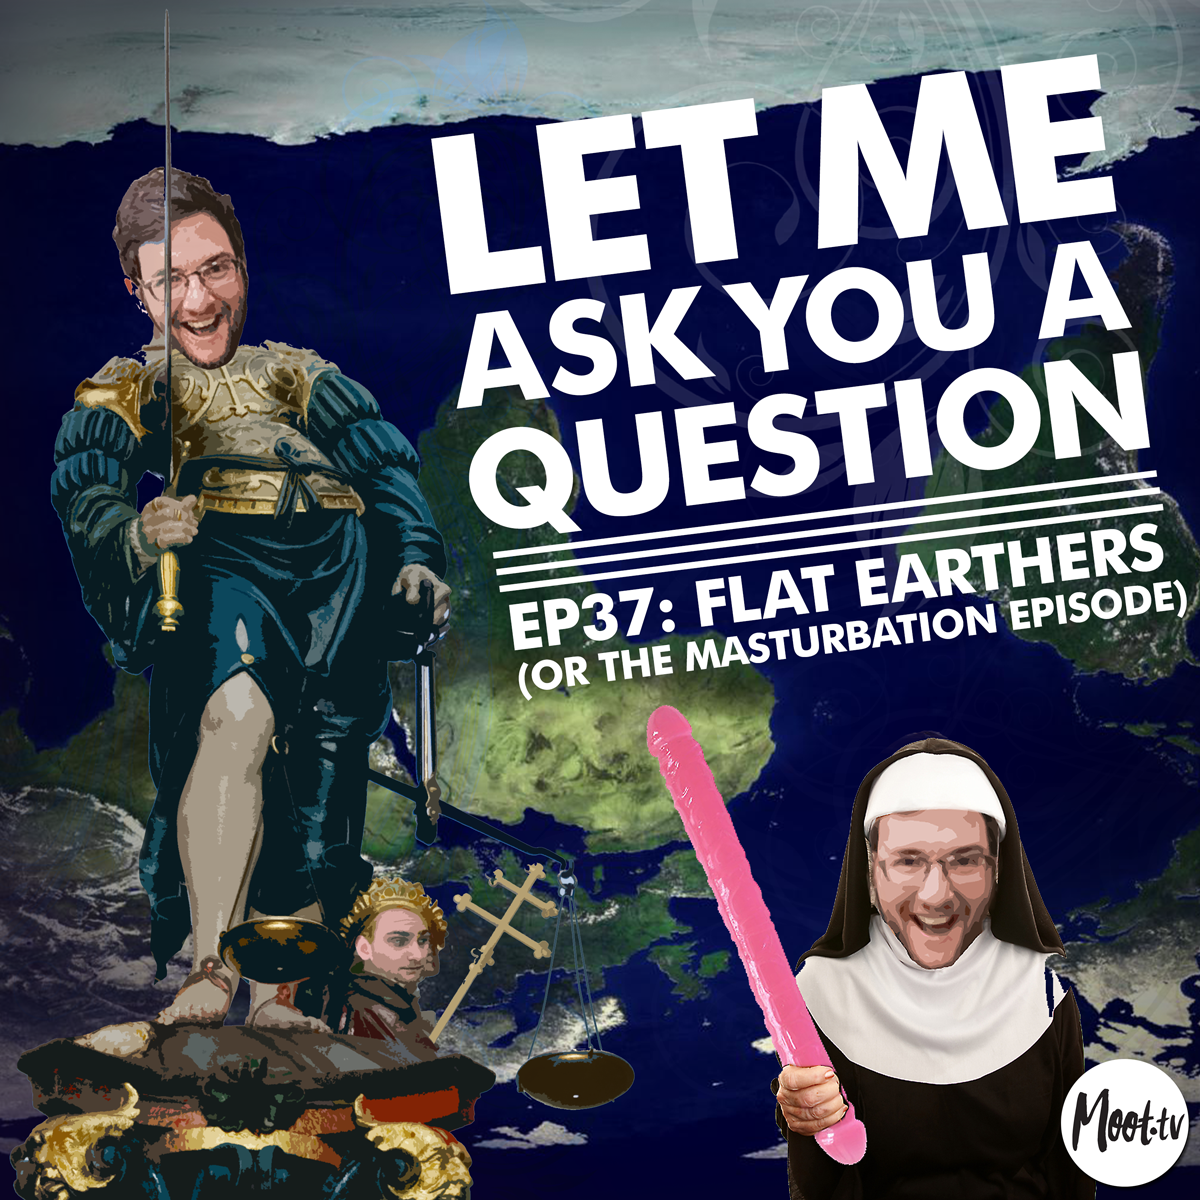 Let Me Ask You A Question Ep37: Flat Earthers (or the Masturbation Episode)